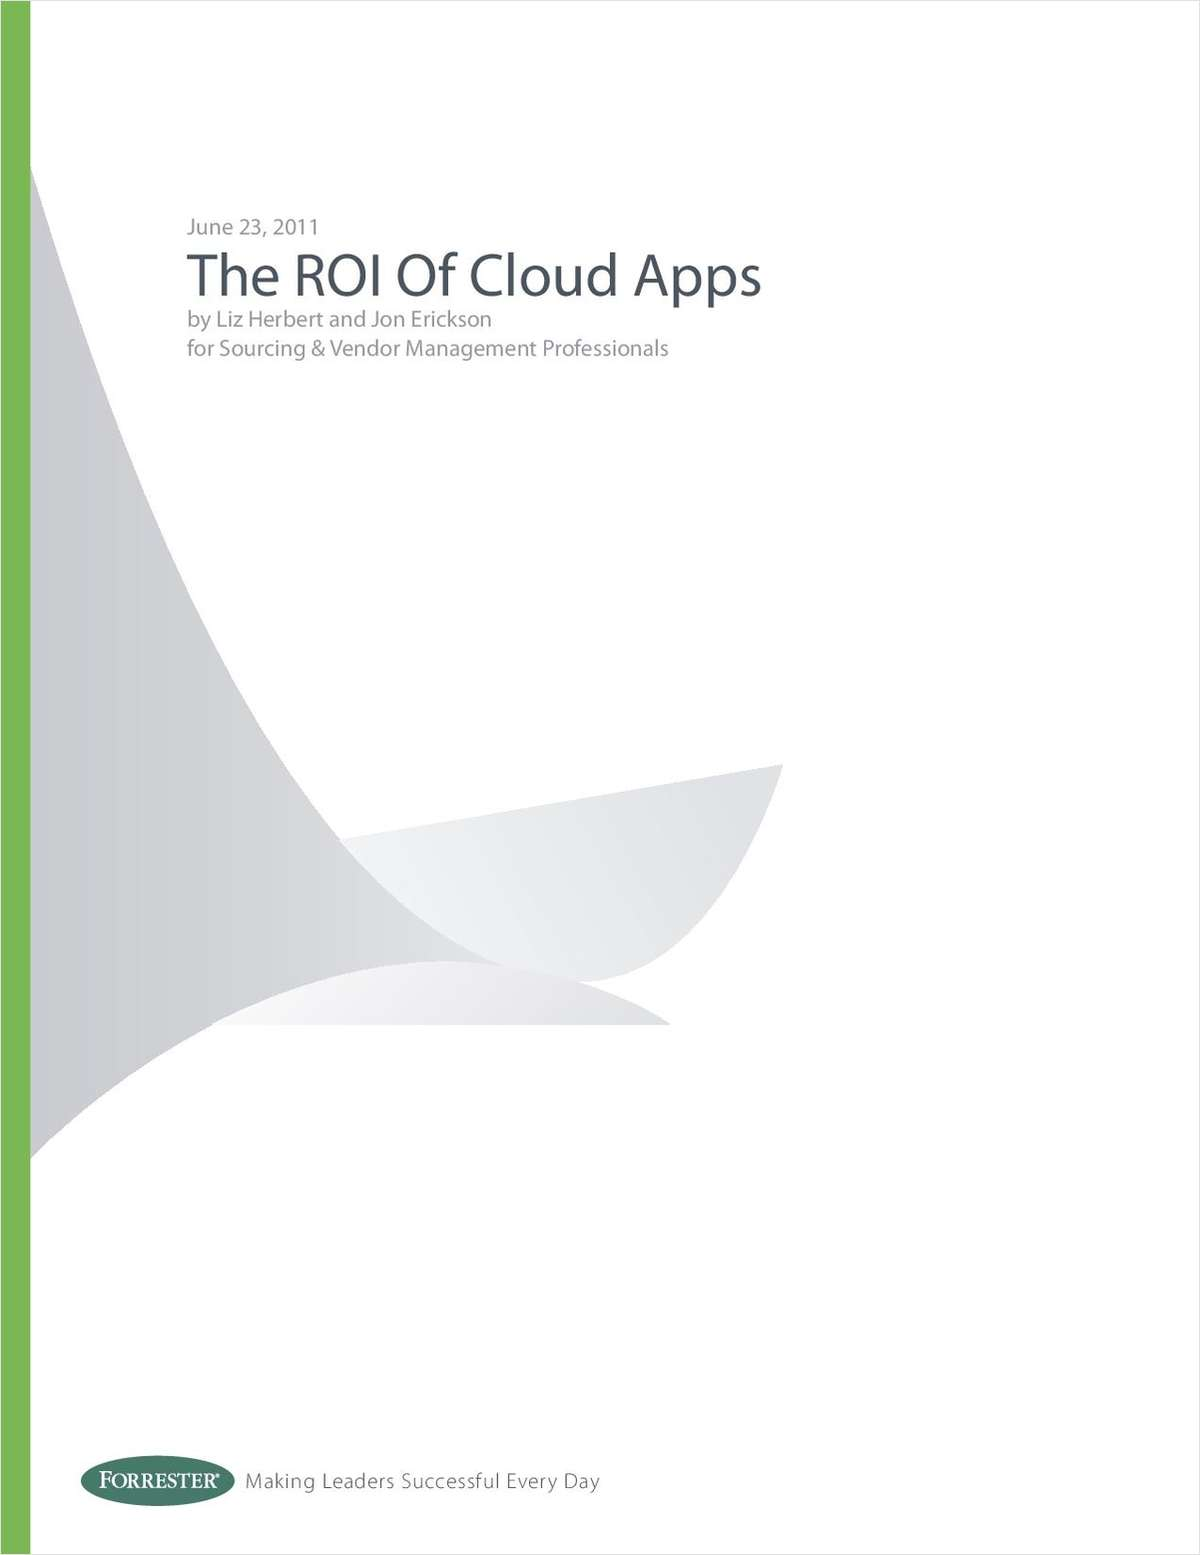 The ROI of Cloud Apps